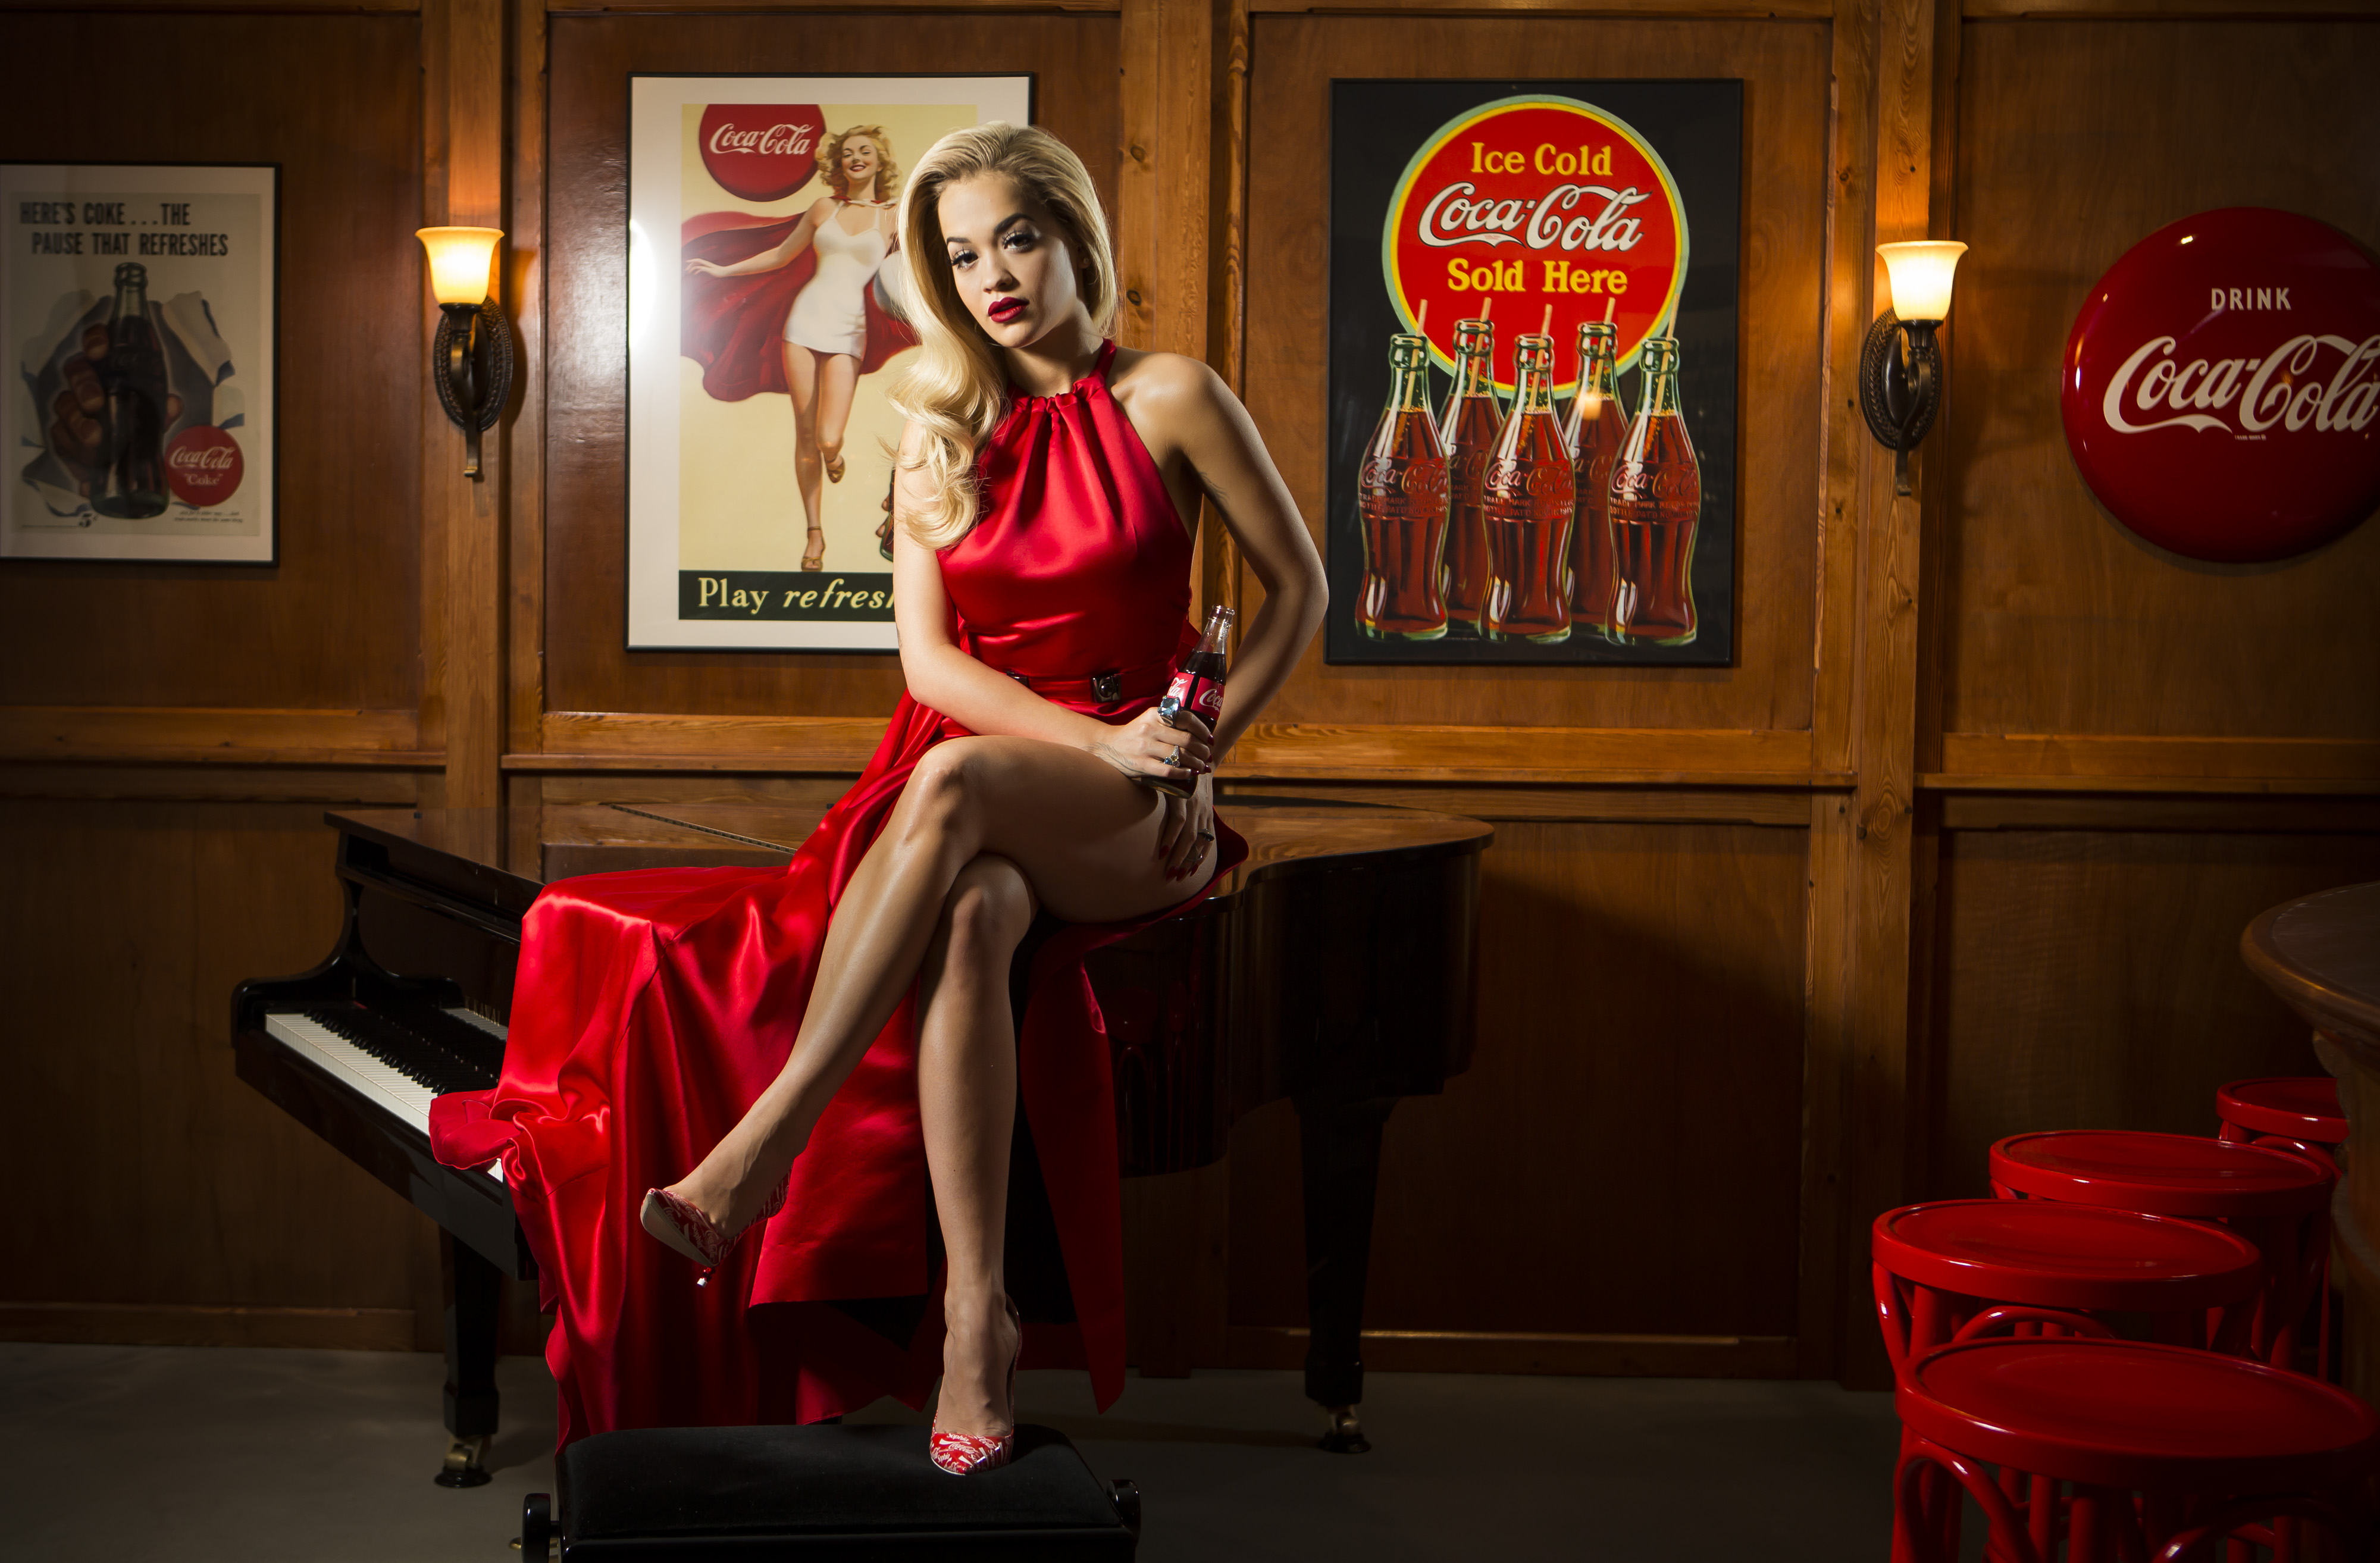 Rita Ora Kicks Off Celebrations For 100th Anniversary Of The Iconic Coca-Cola Bottle At The Opening Of The Contour Centenary Bar